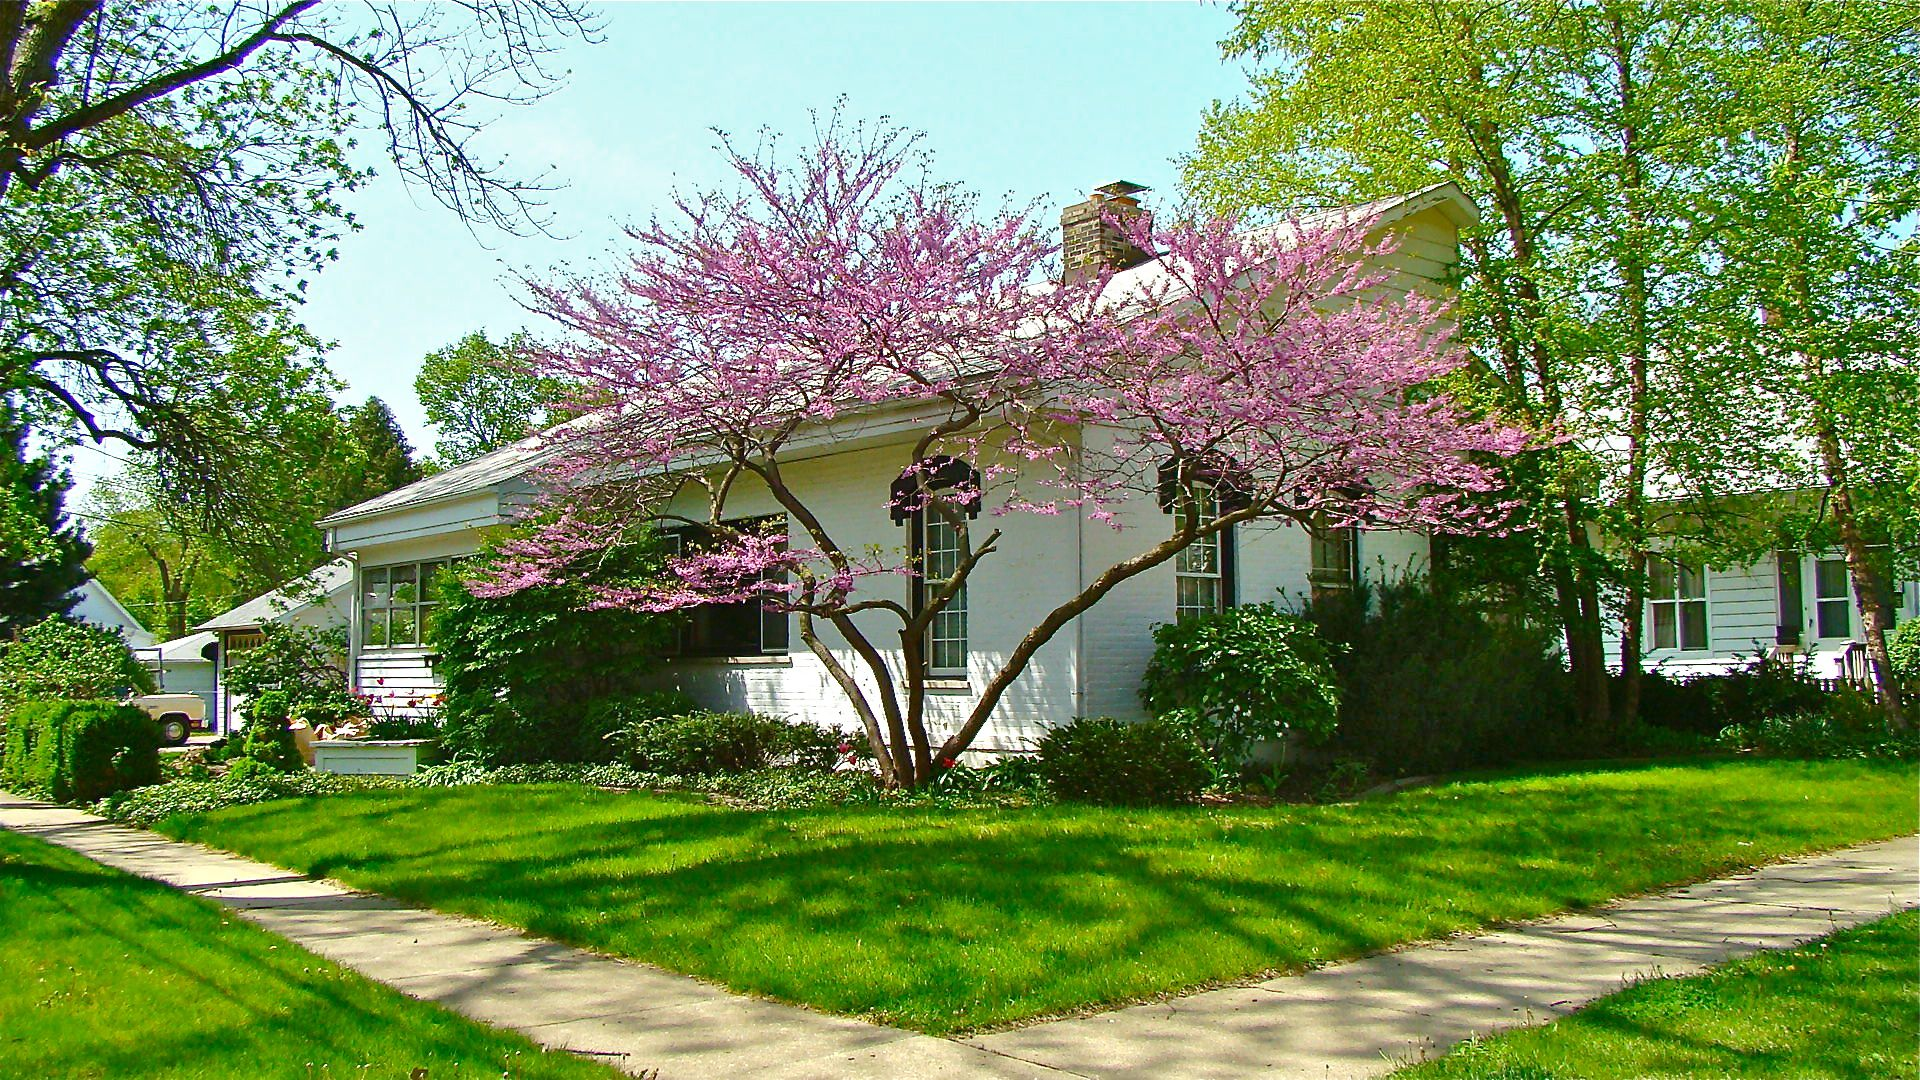 Native Flowering Trees Pat Hills Natural Midwest Garden